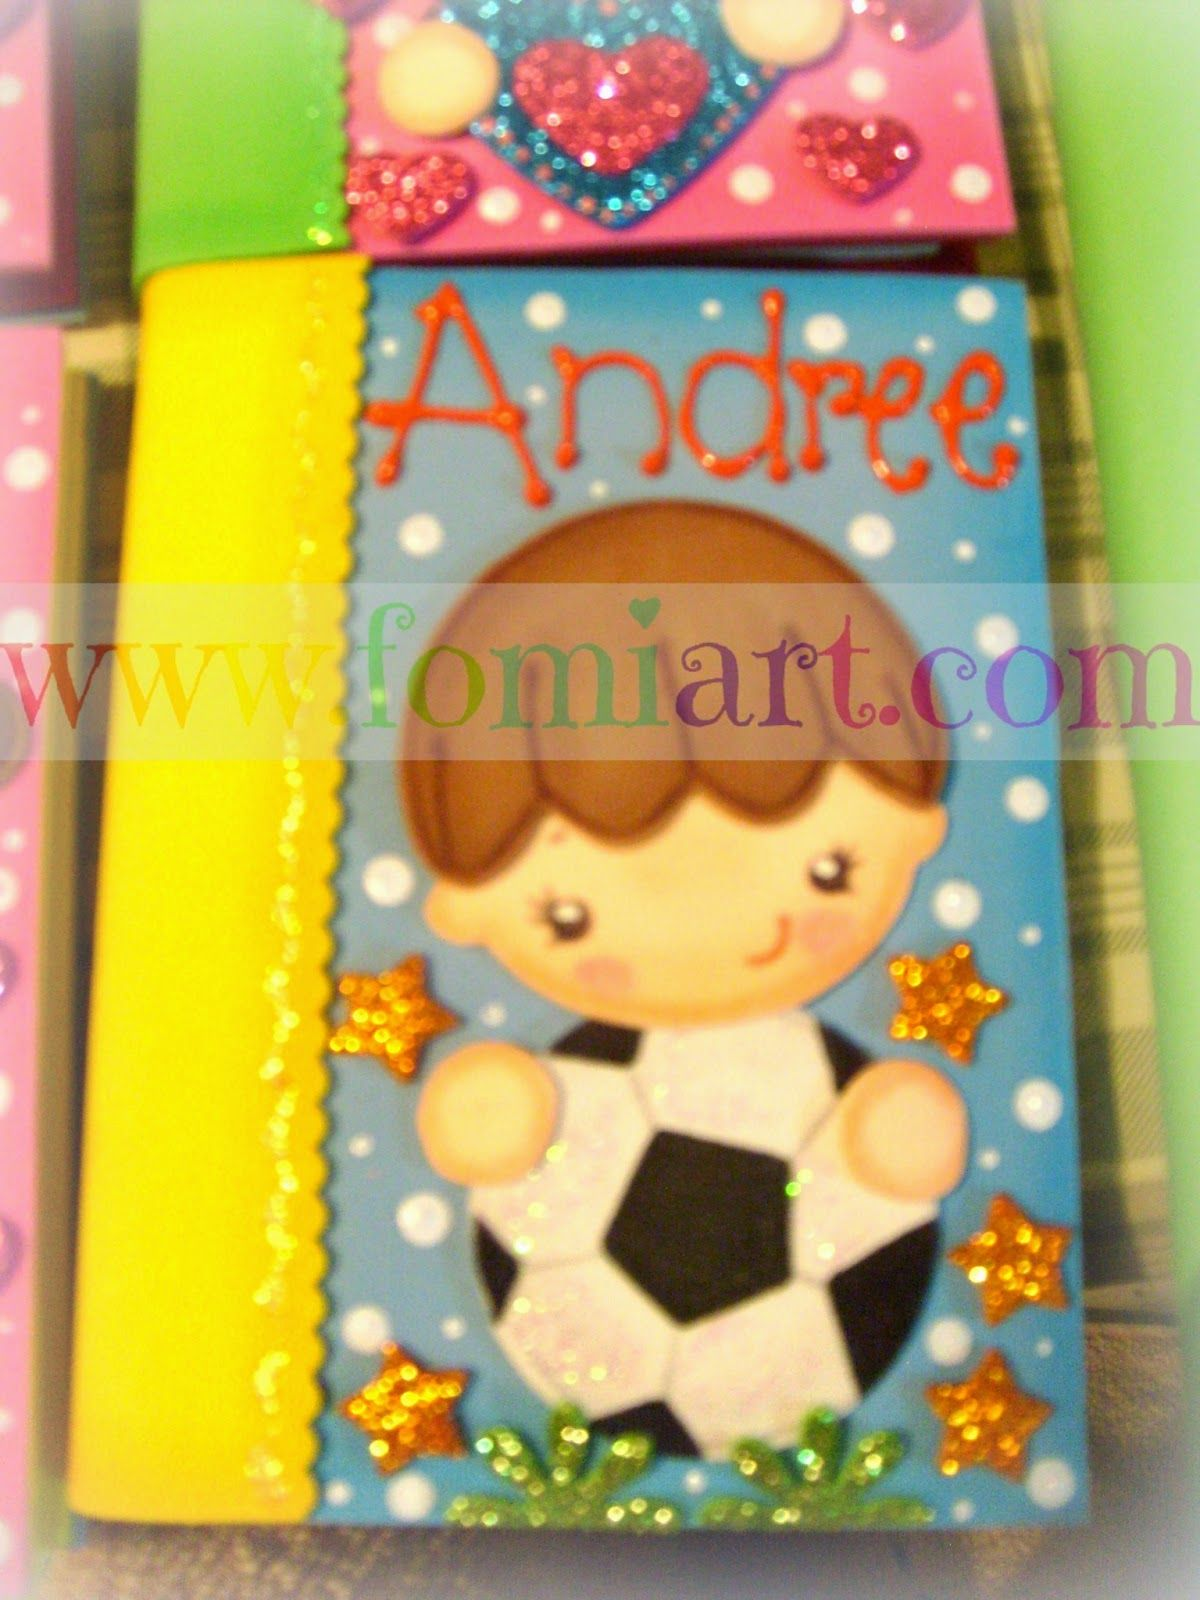 Como Decorar Una Carpeta Para Niños Correo Fomiartmexico Gmail Nomb Crafts Ideas Y Diy